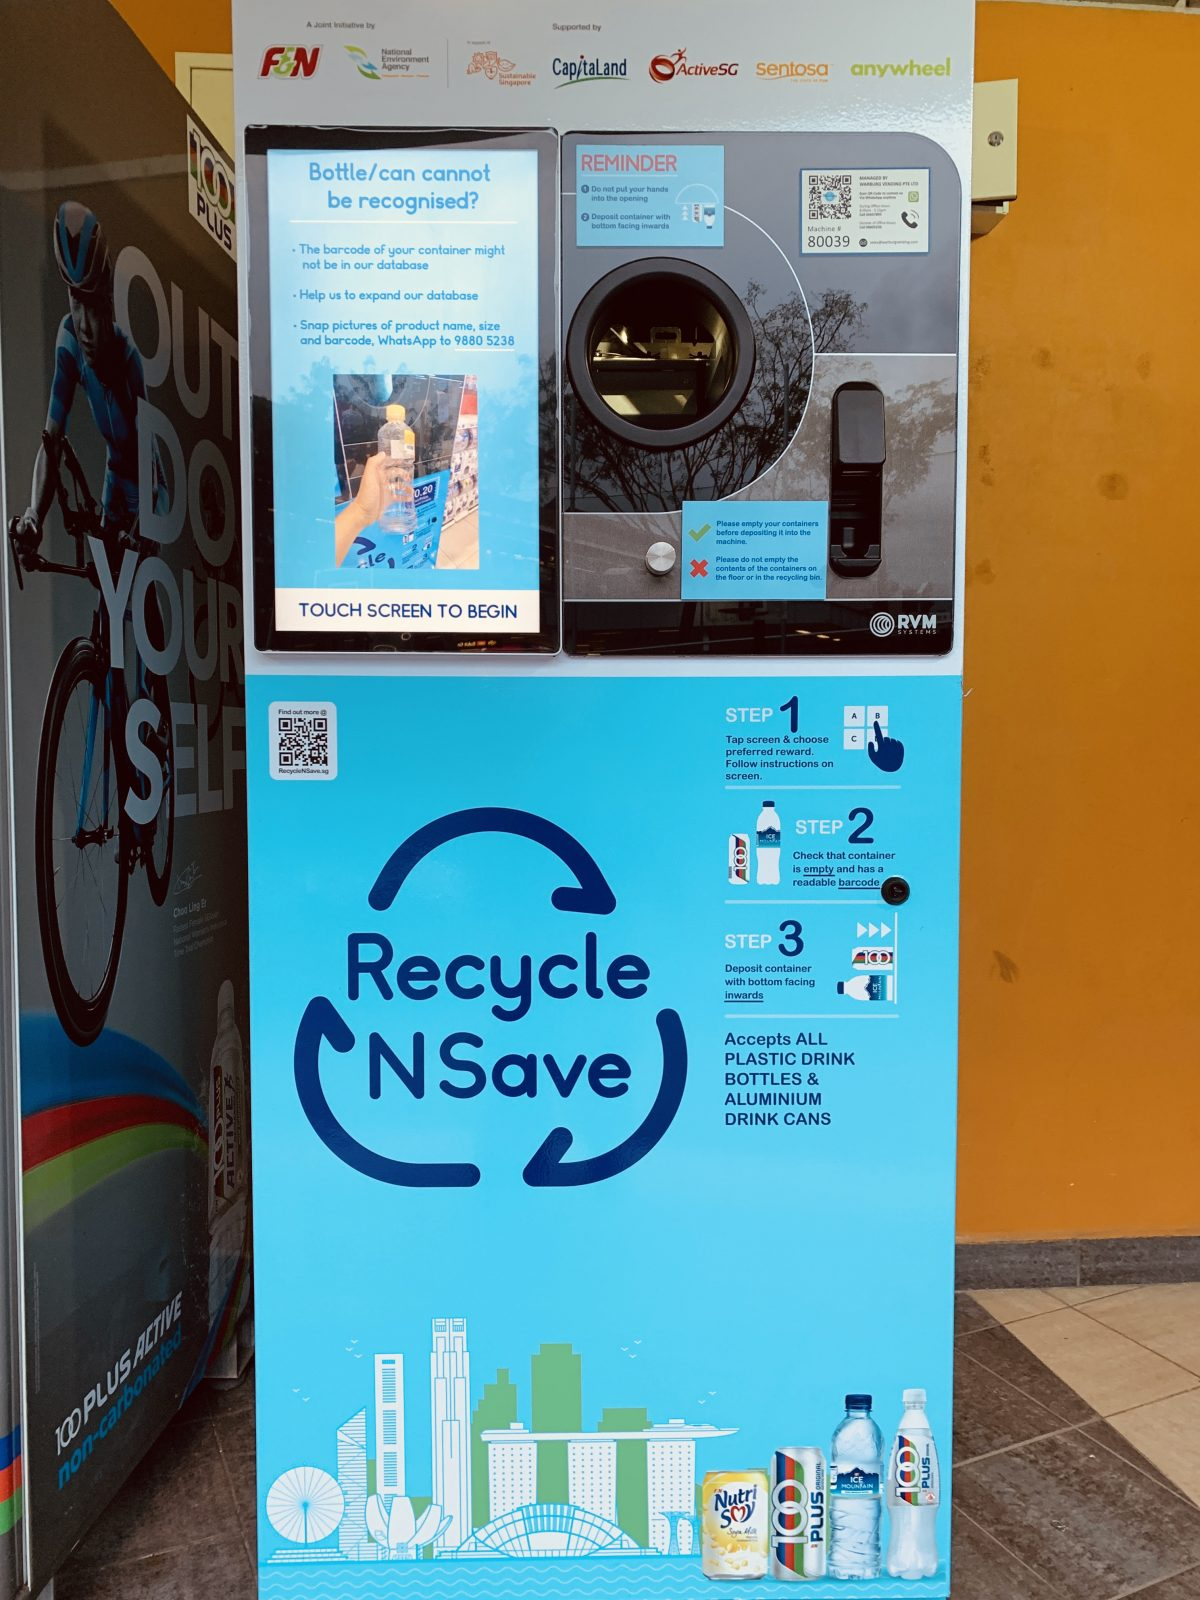 Reverse Vending Machines 反向自动售货机